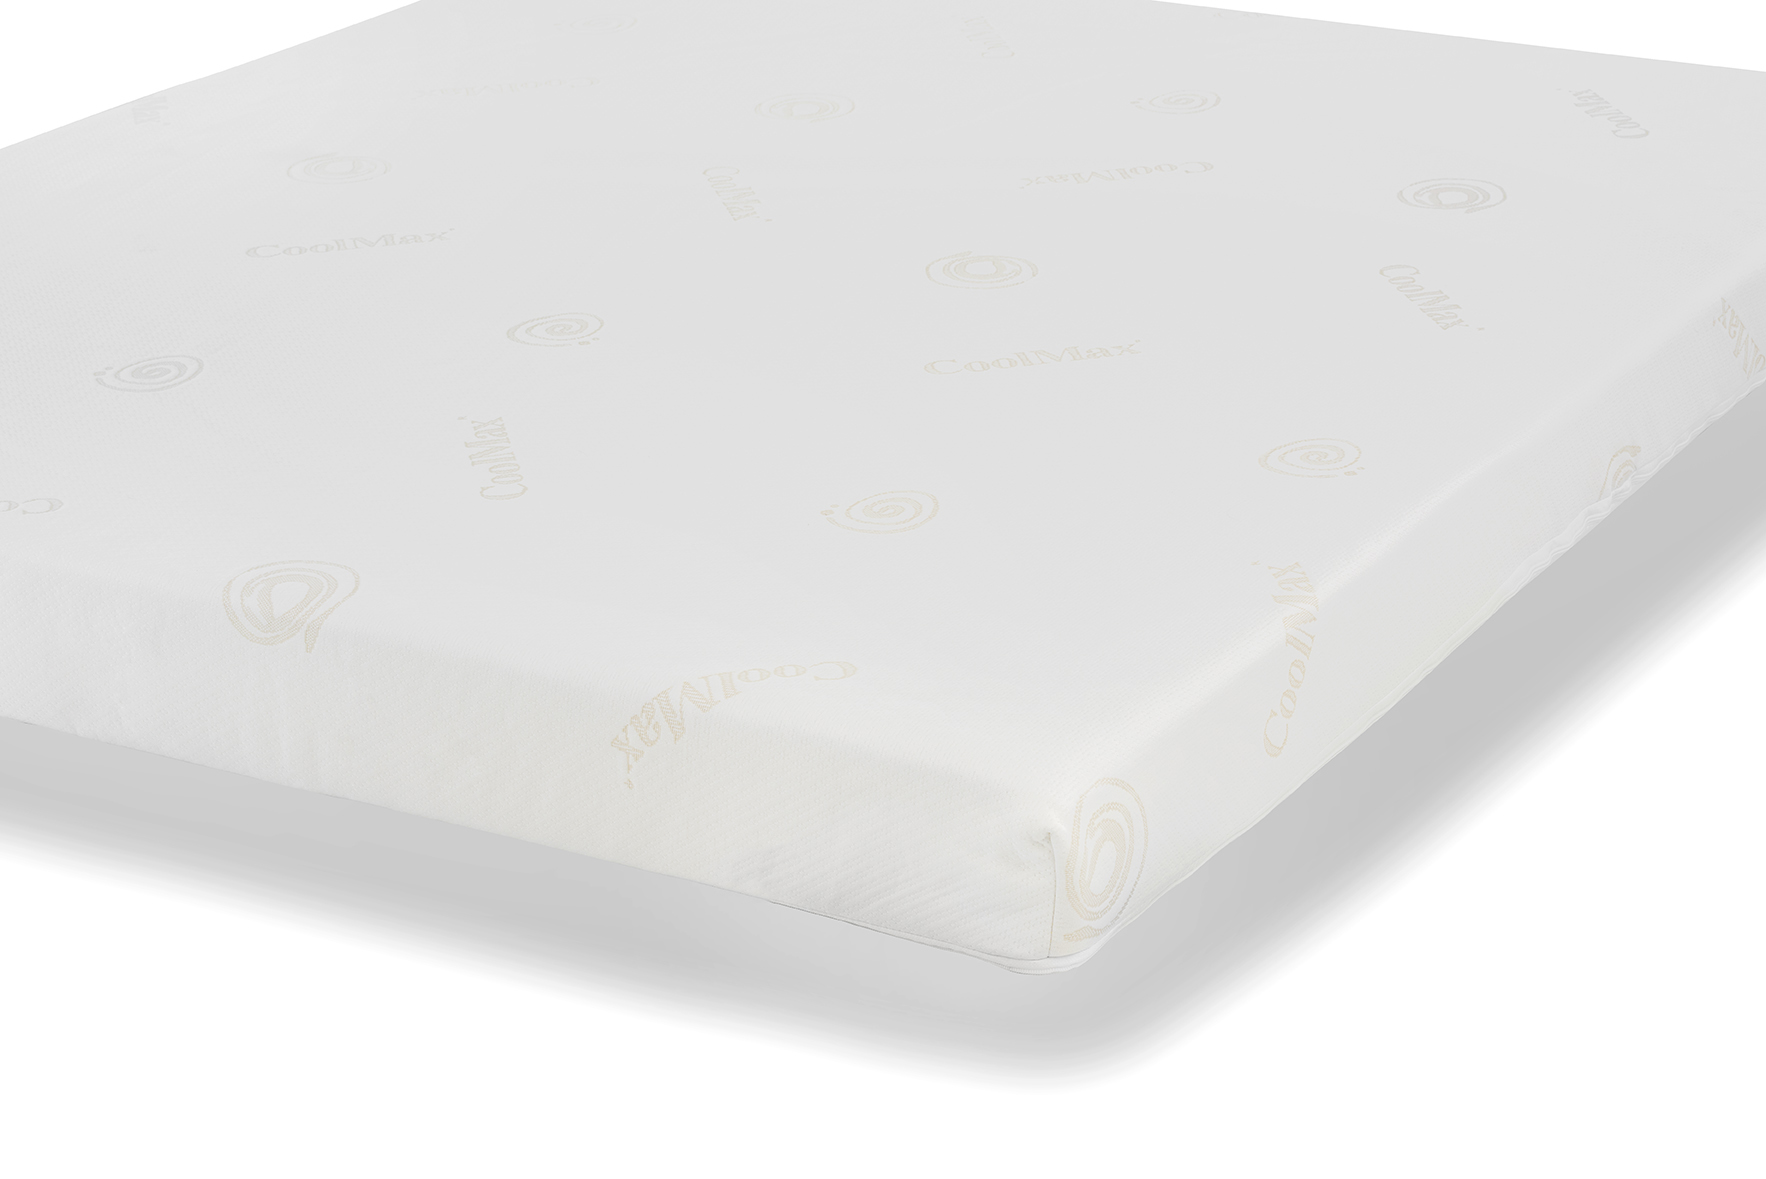 Deluxe Sofa Bed Mattress With Memory Foam. -